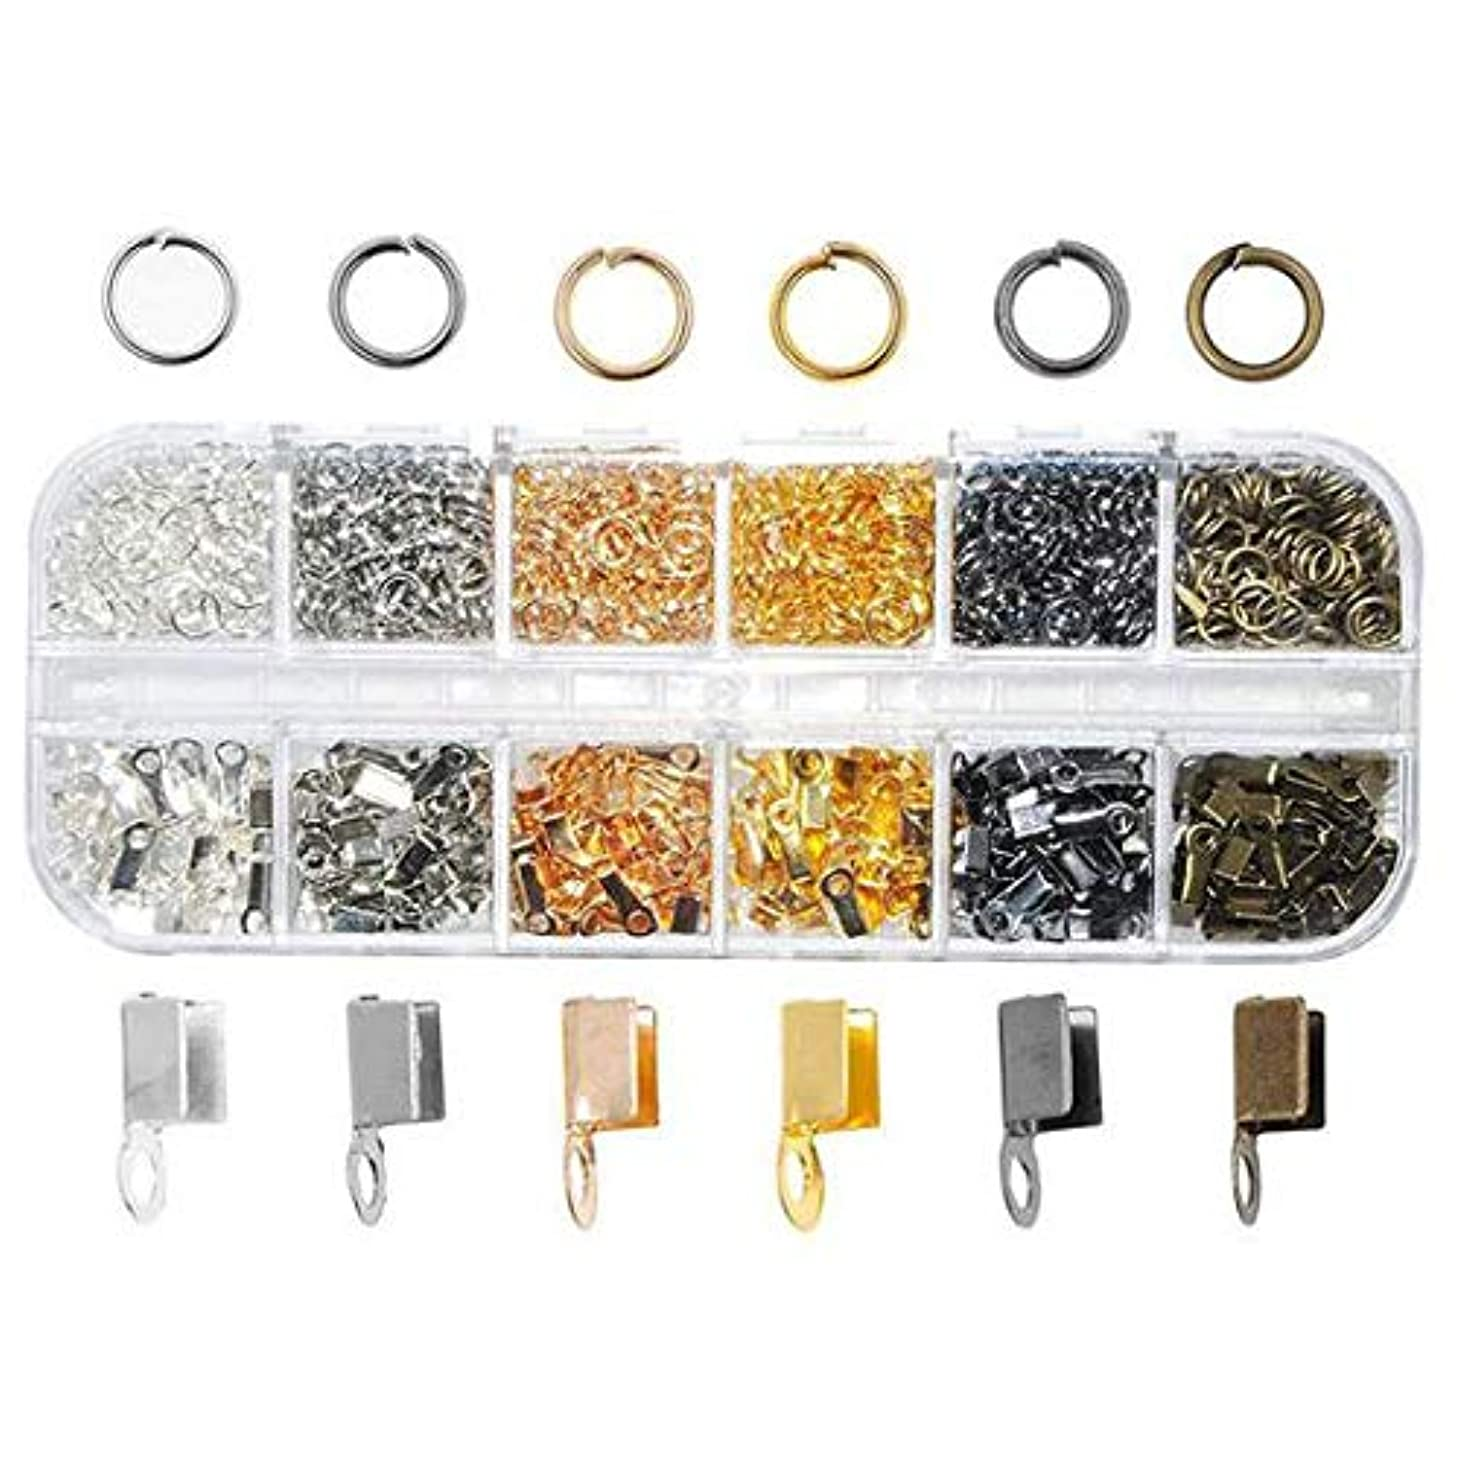 1080 pcs 6 Colors 3mm Cord Ends and 6 Colors 5 mm Open Jump Rings for Jewelry Making Jewelry Findings Set